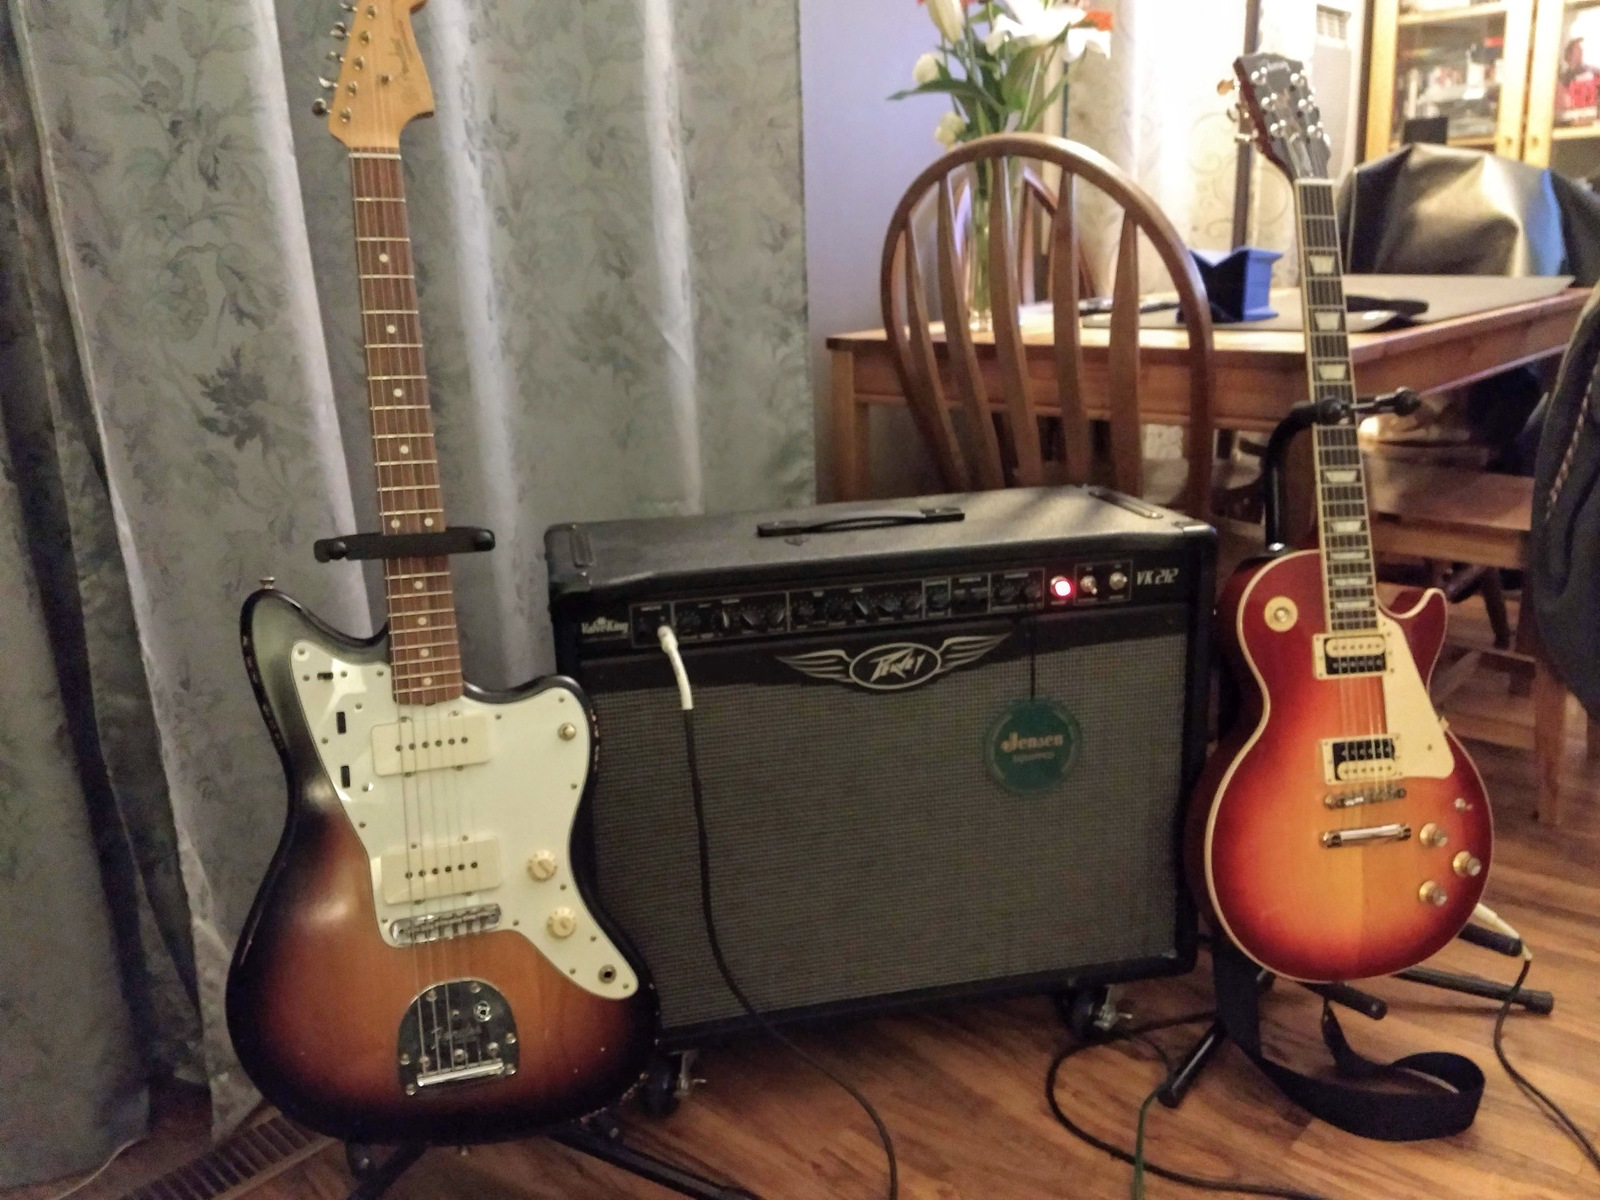 Photo of Fender Jazzmaster Electric Guitar and more gear